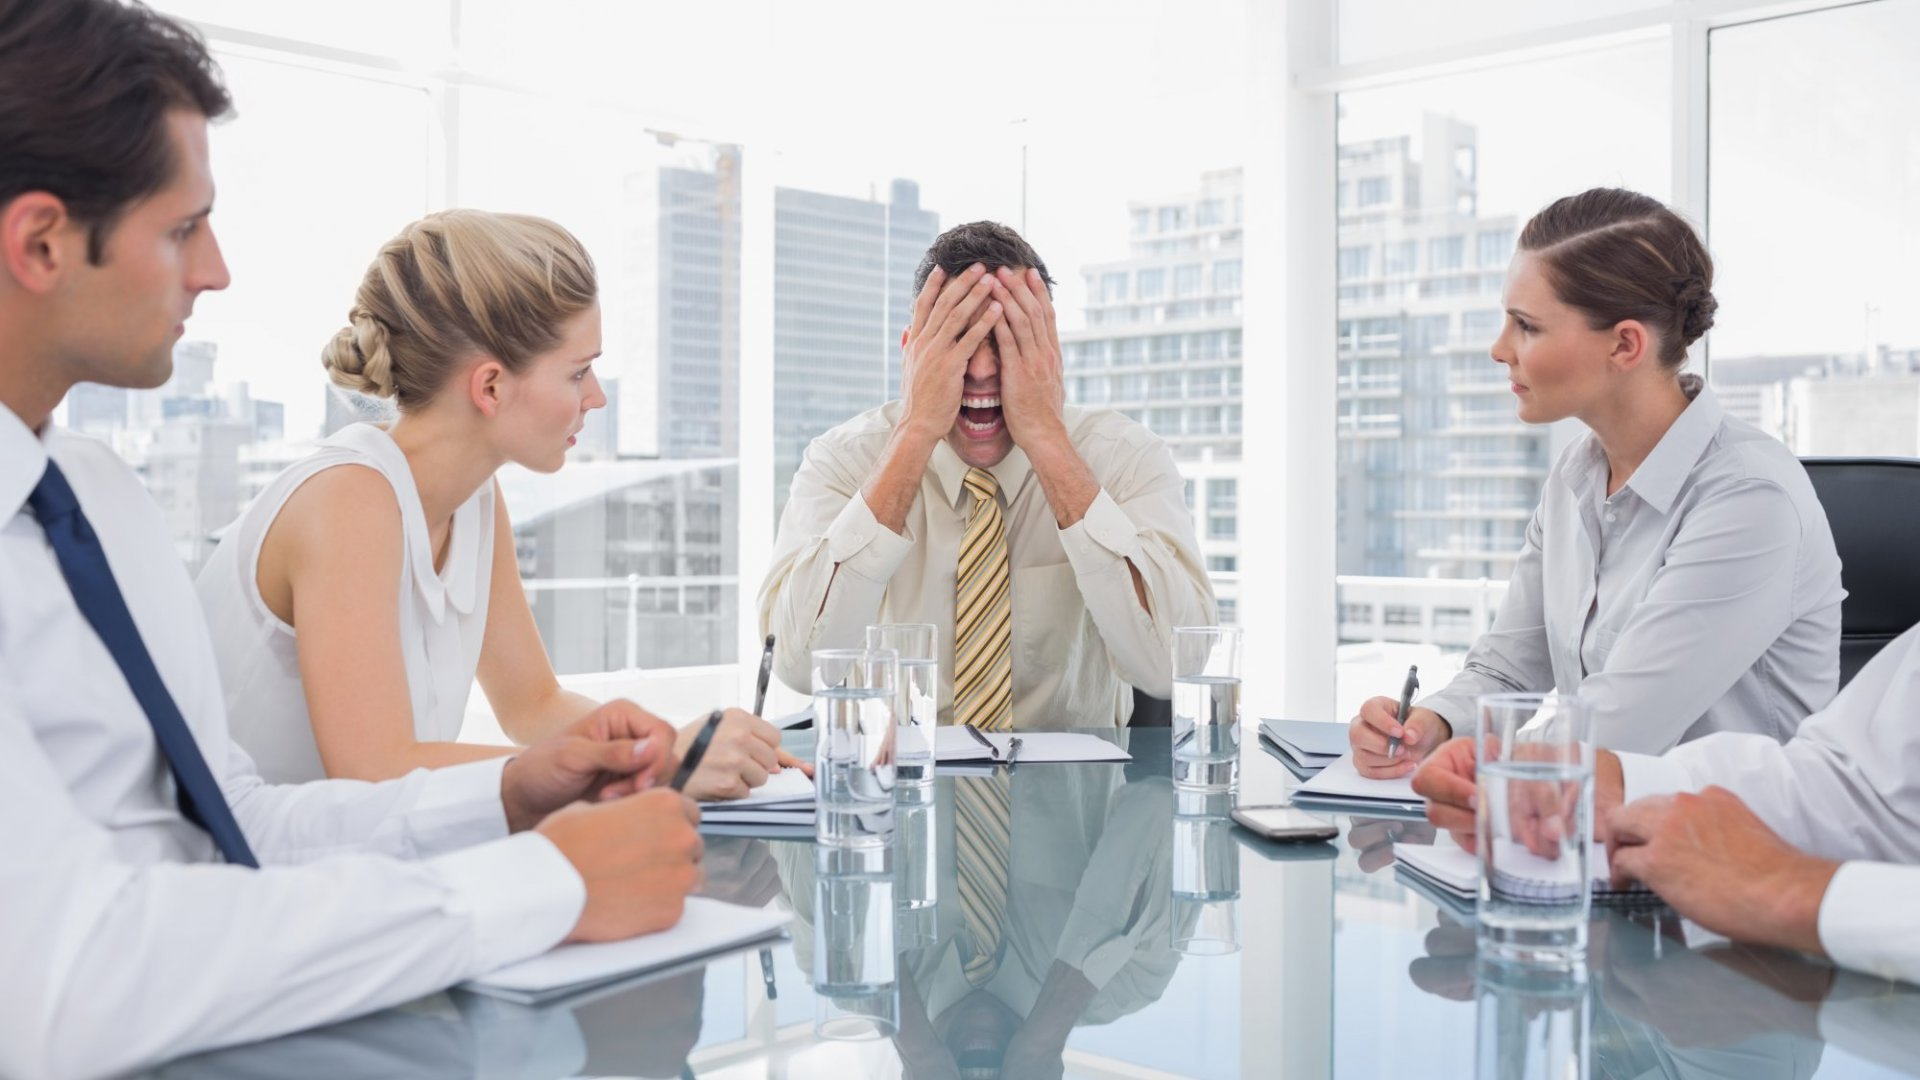 15 Things Your Team Hate About You (but Will Never Tell You)